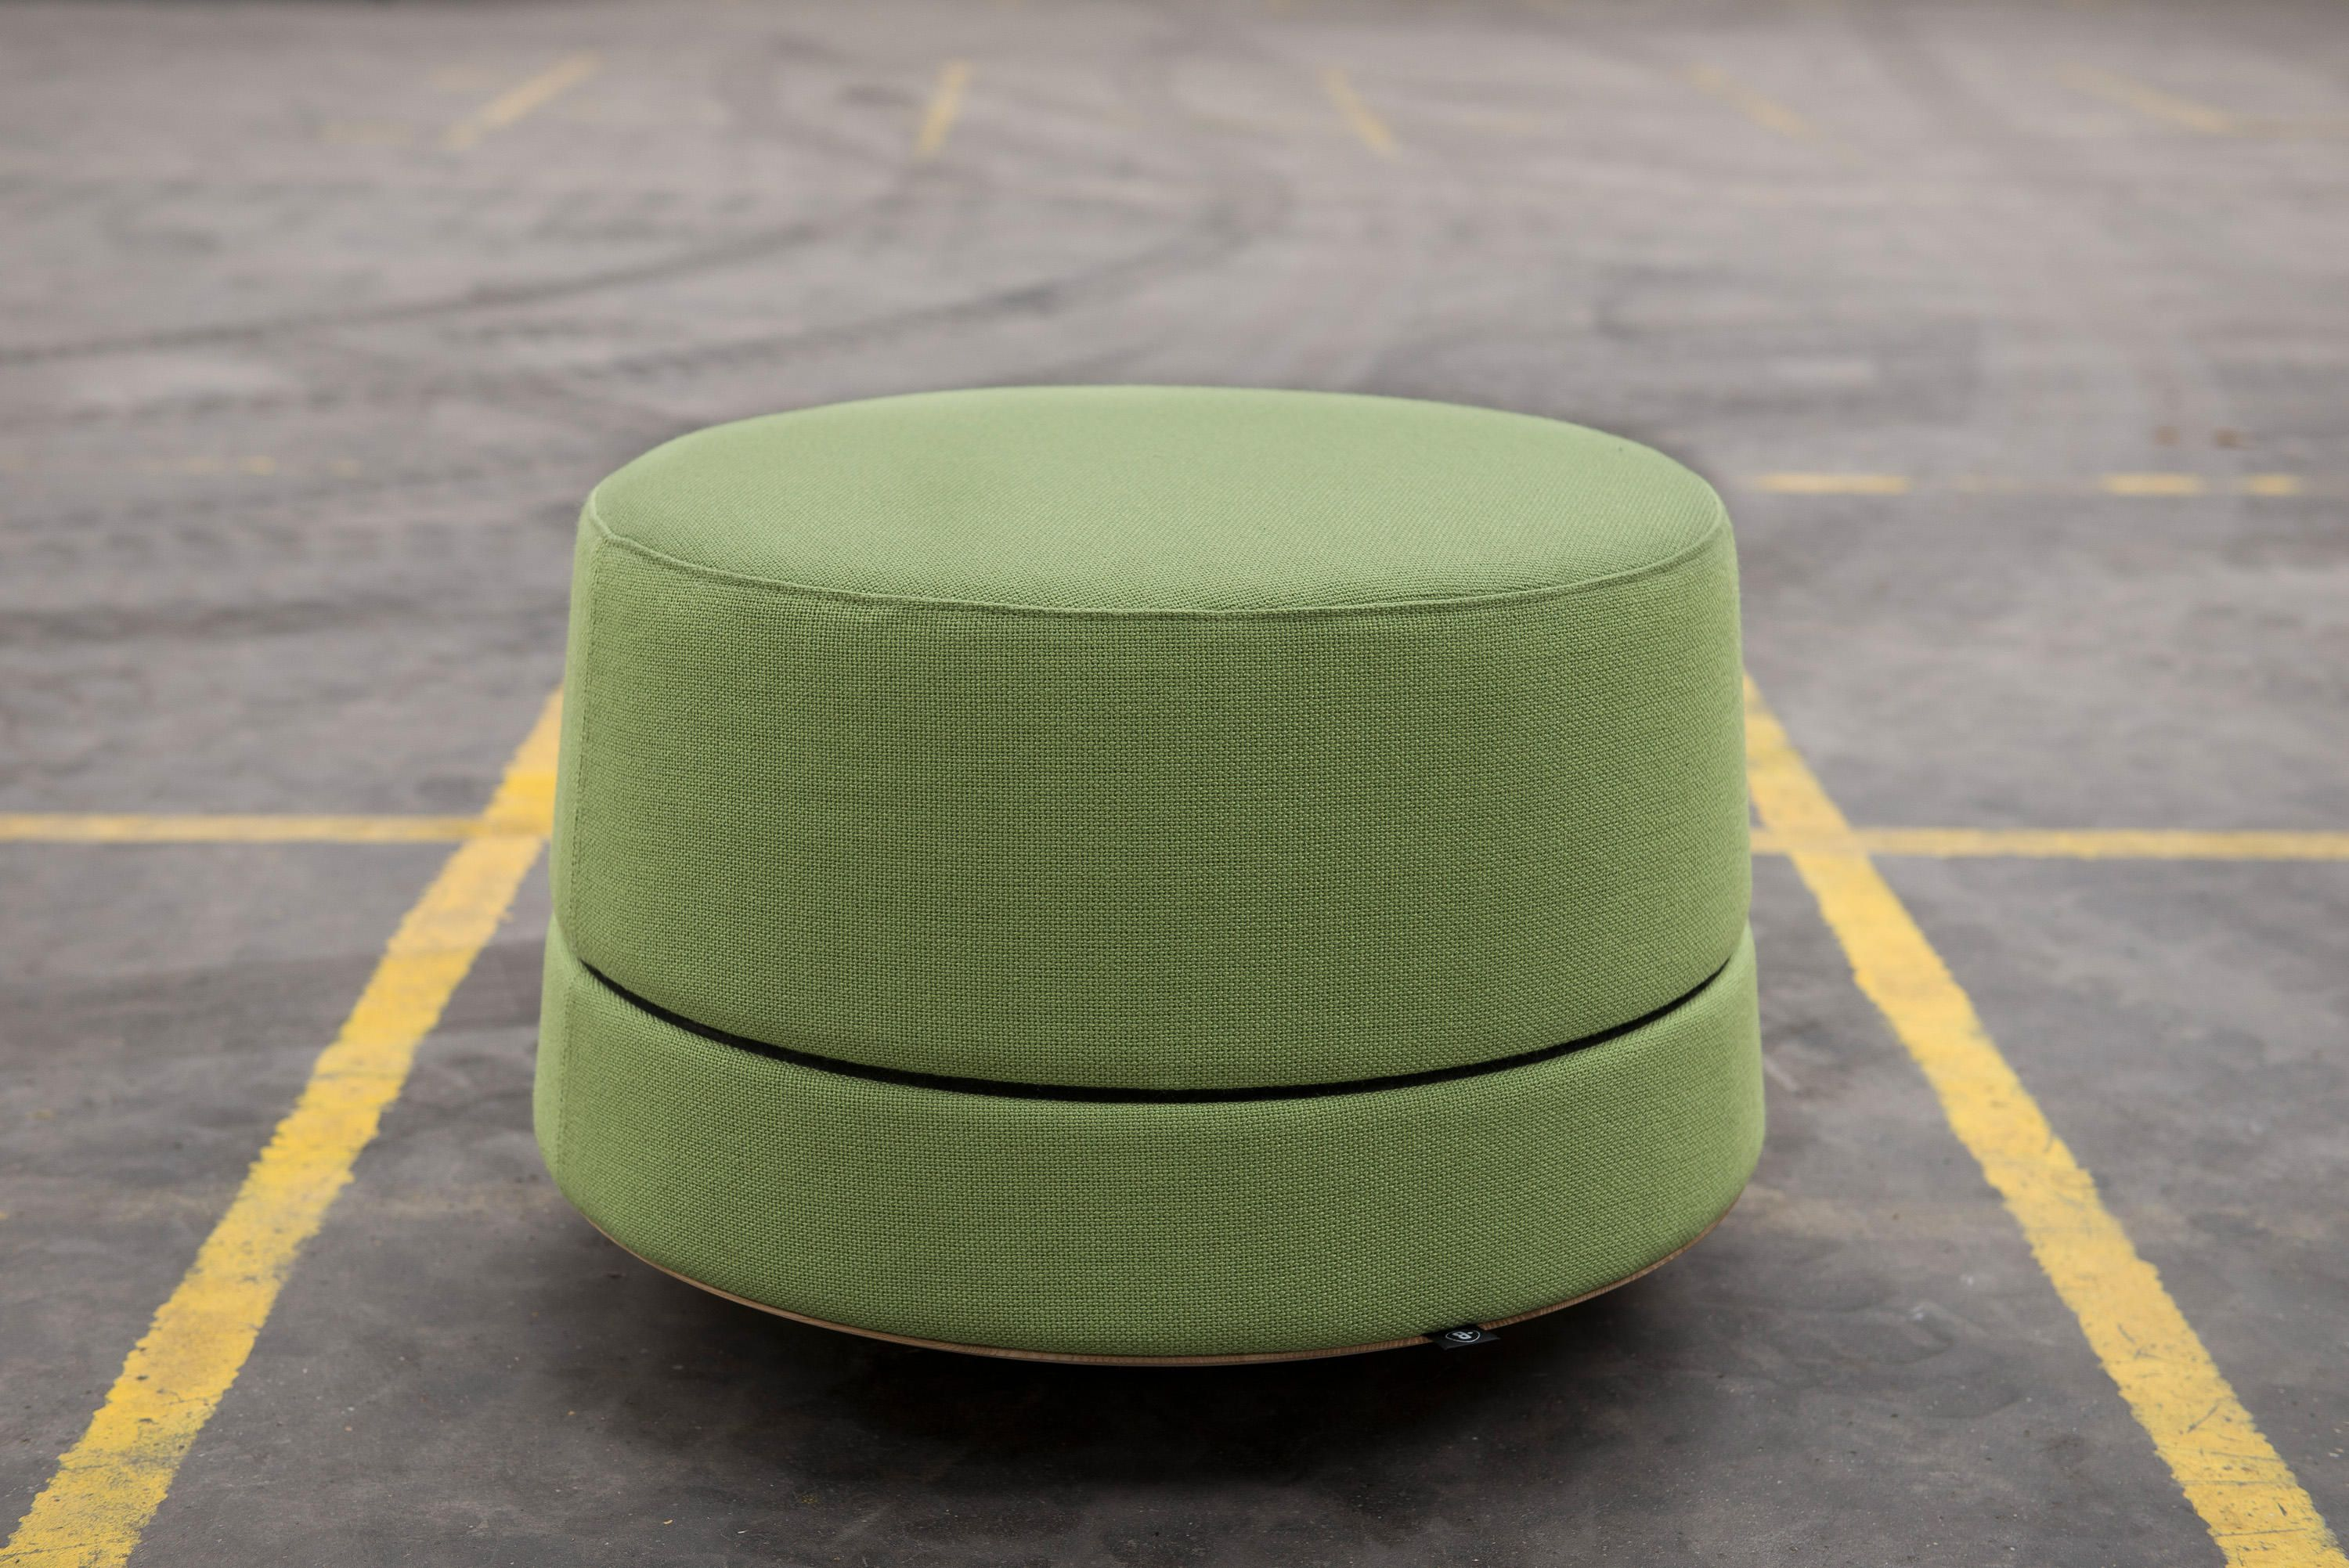 Buzzibalance designer poufs from buzzispace ✓ all information